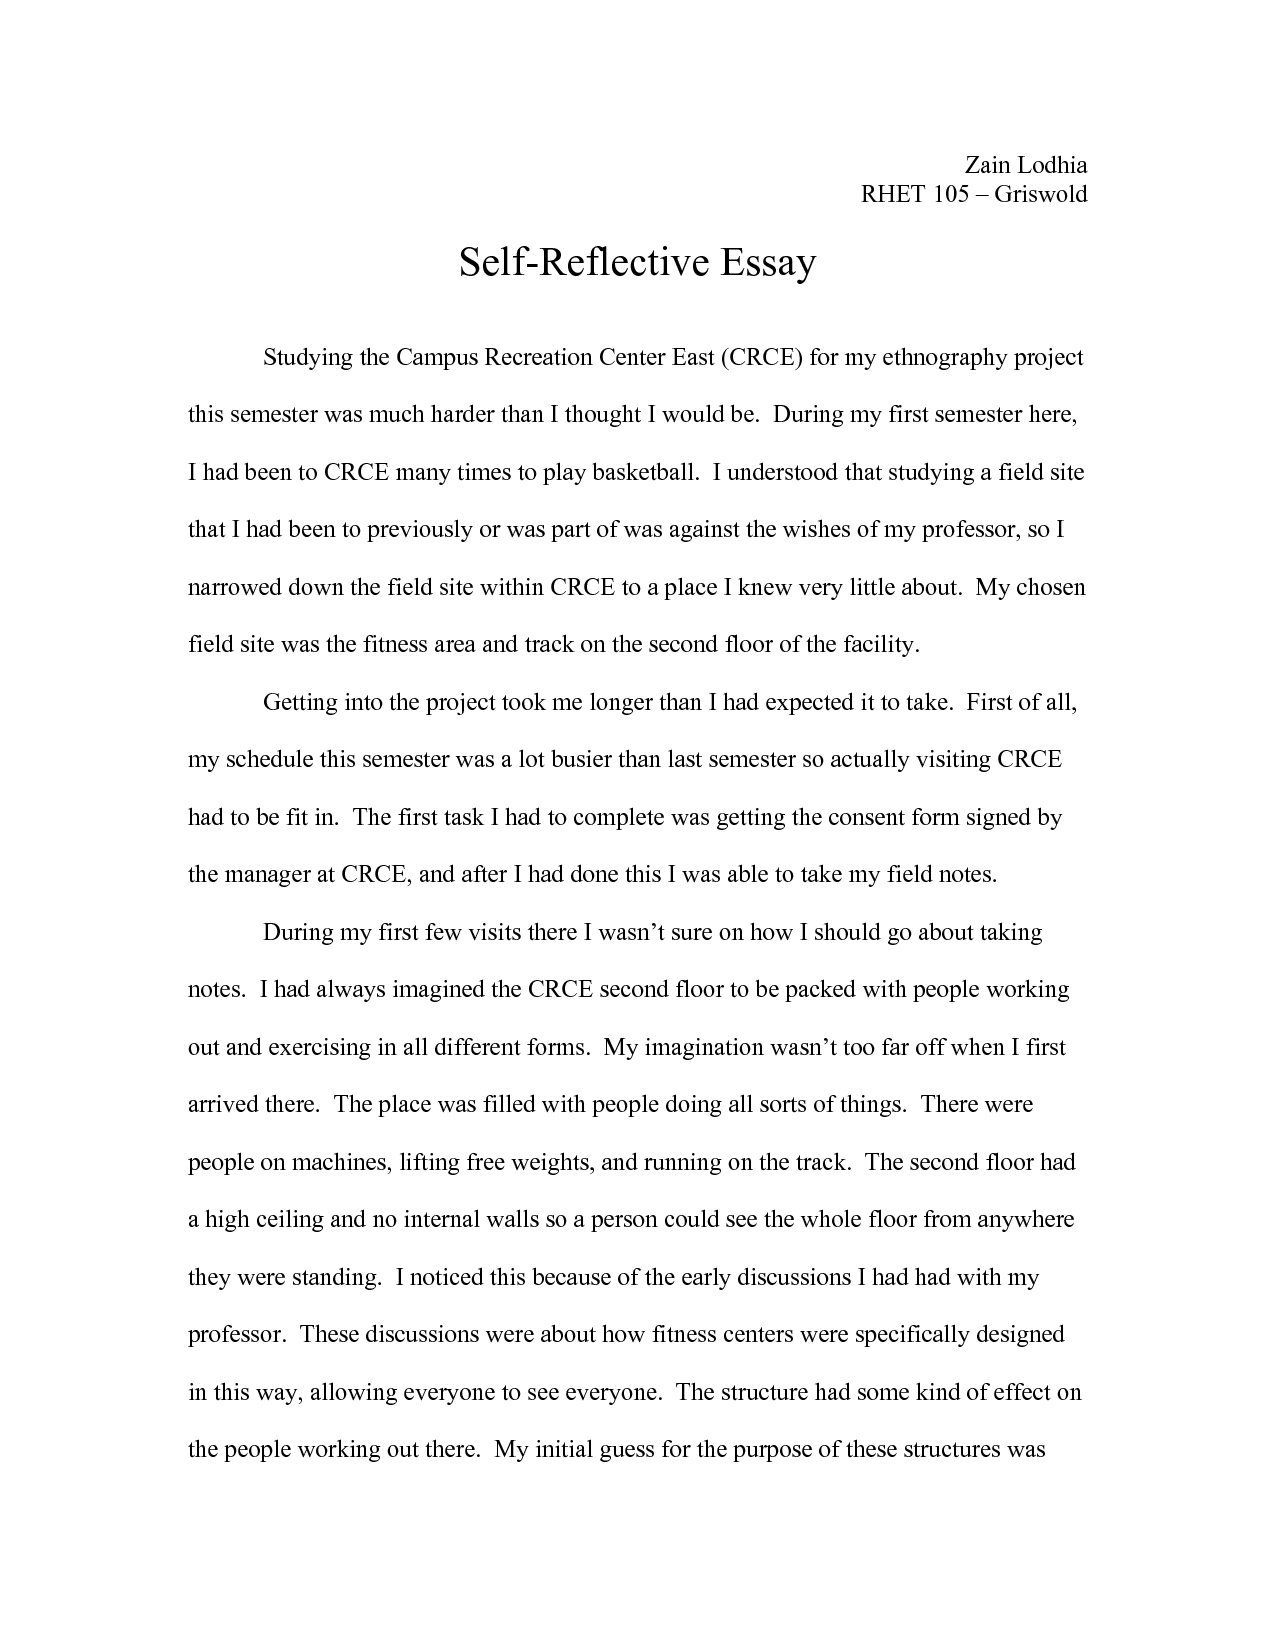 018 Qal0pwnf46 Free English Essays On Different Topics Essay Dreaded In Full